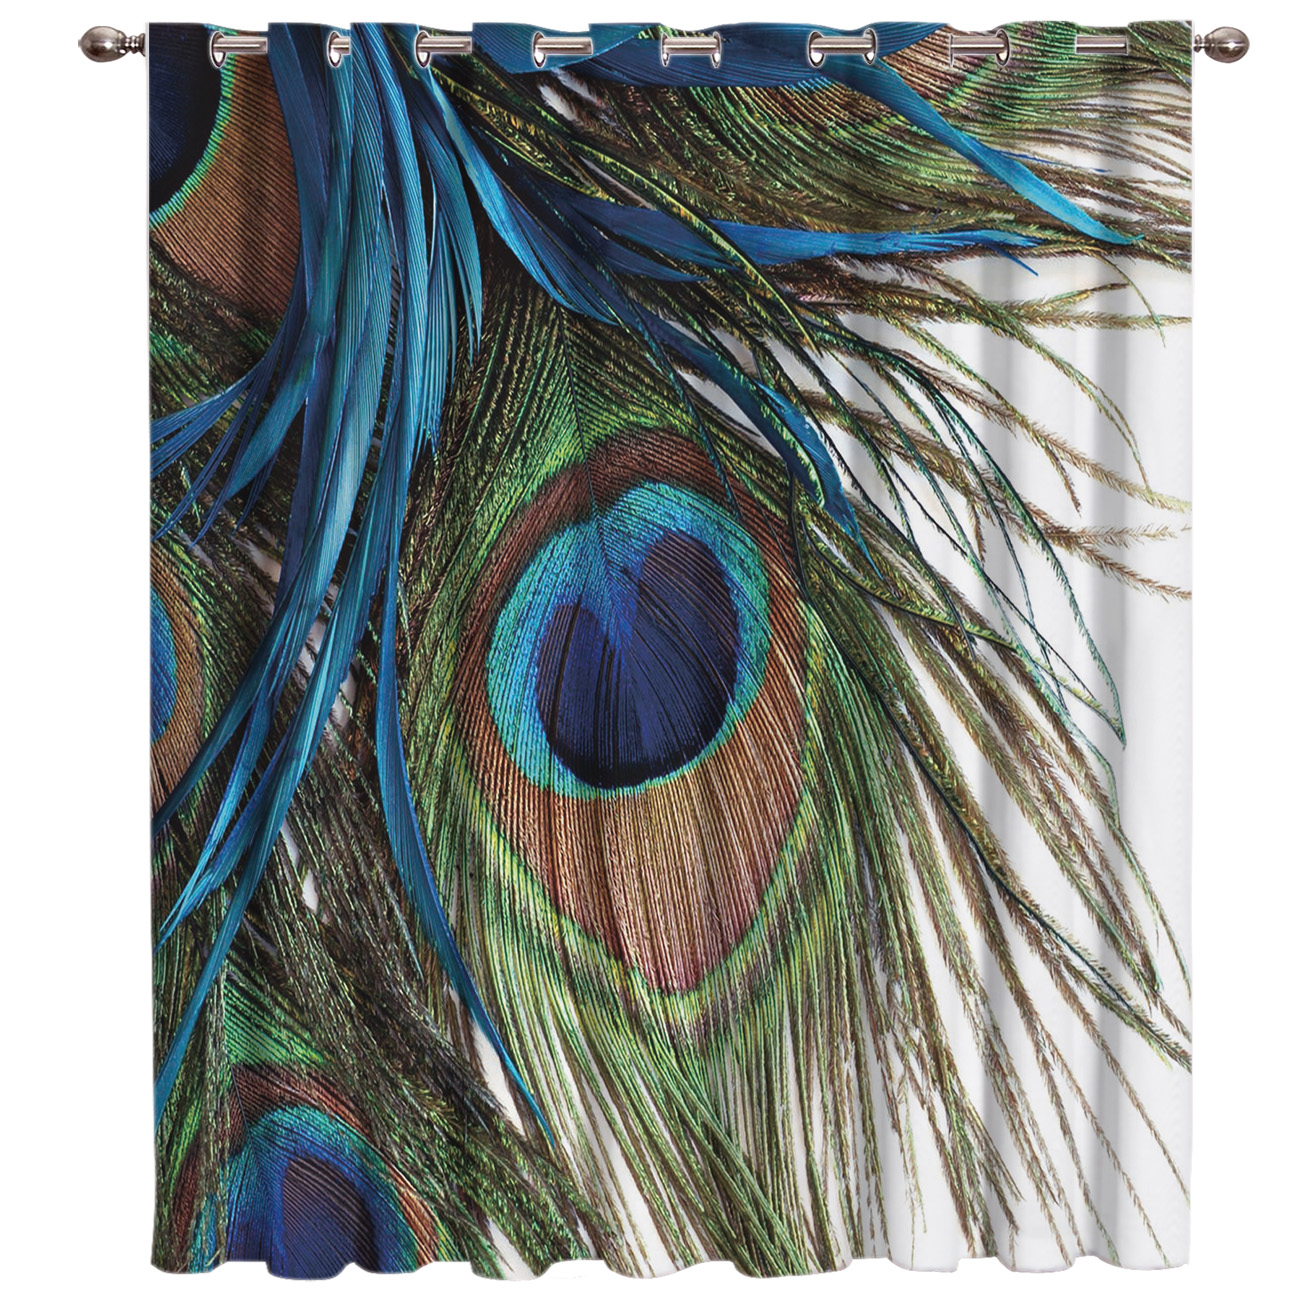 Peacock Feather 3D Painting Art Room Curtains Large Window Living Room Bedroom Kitchen Outdoor Indoor Fabric Print Curtain